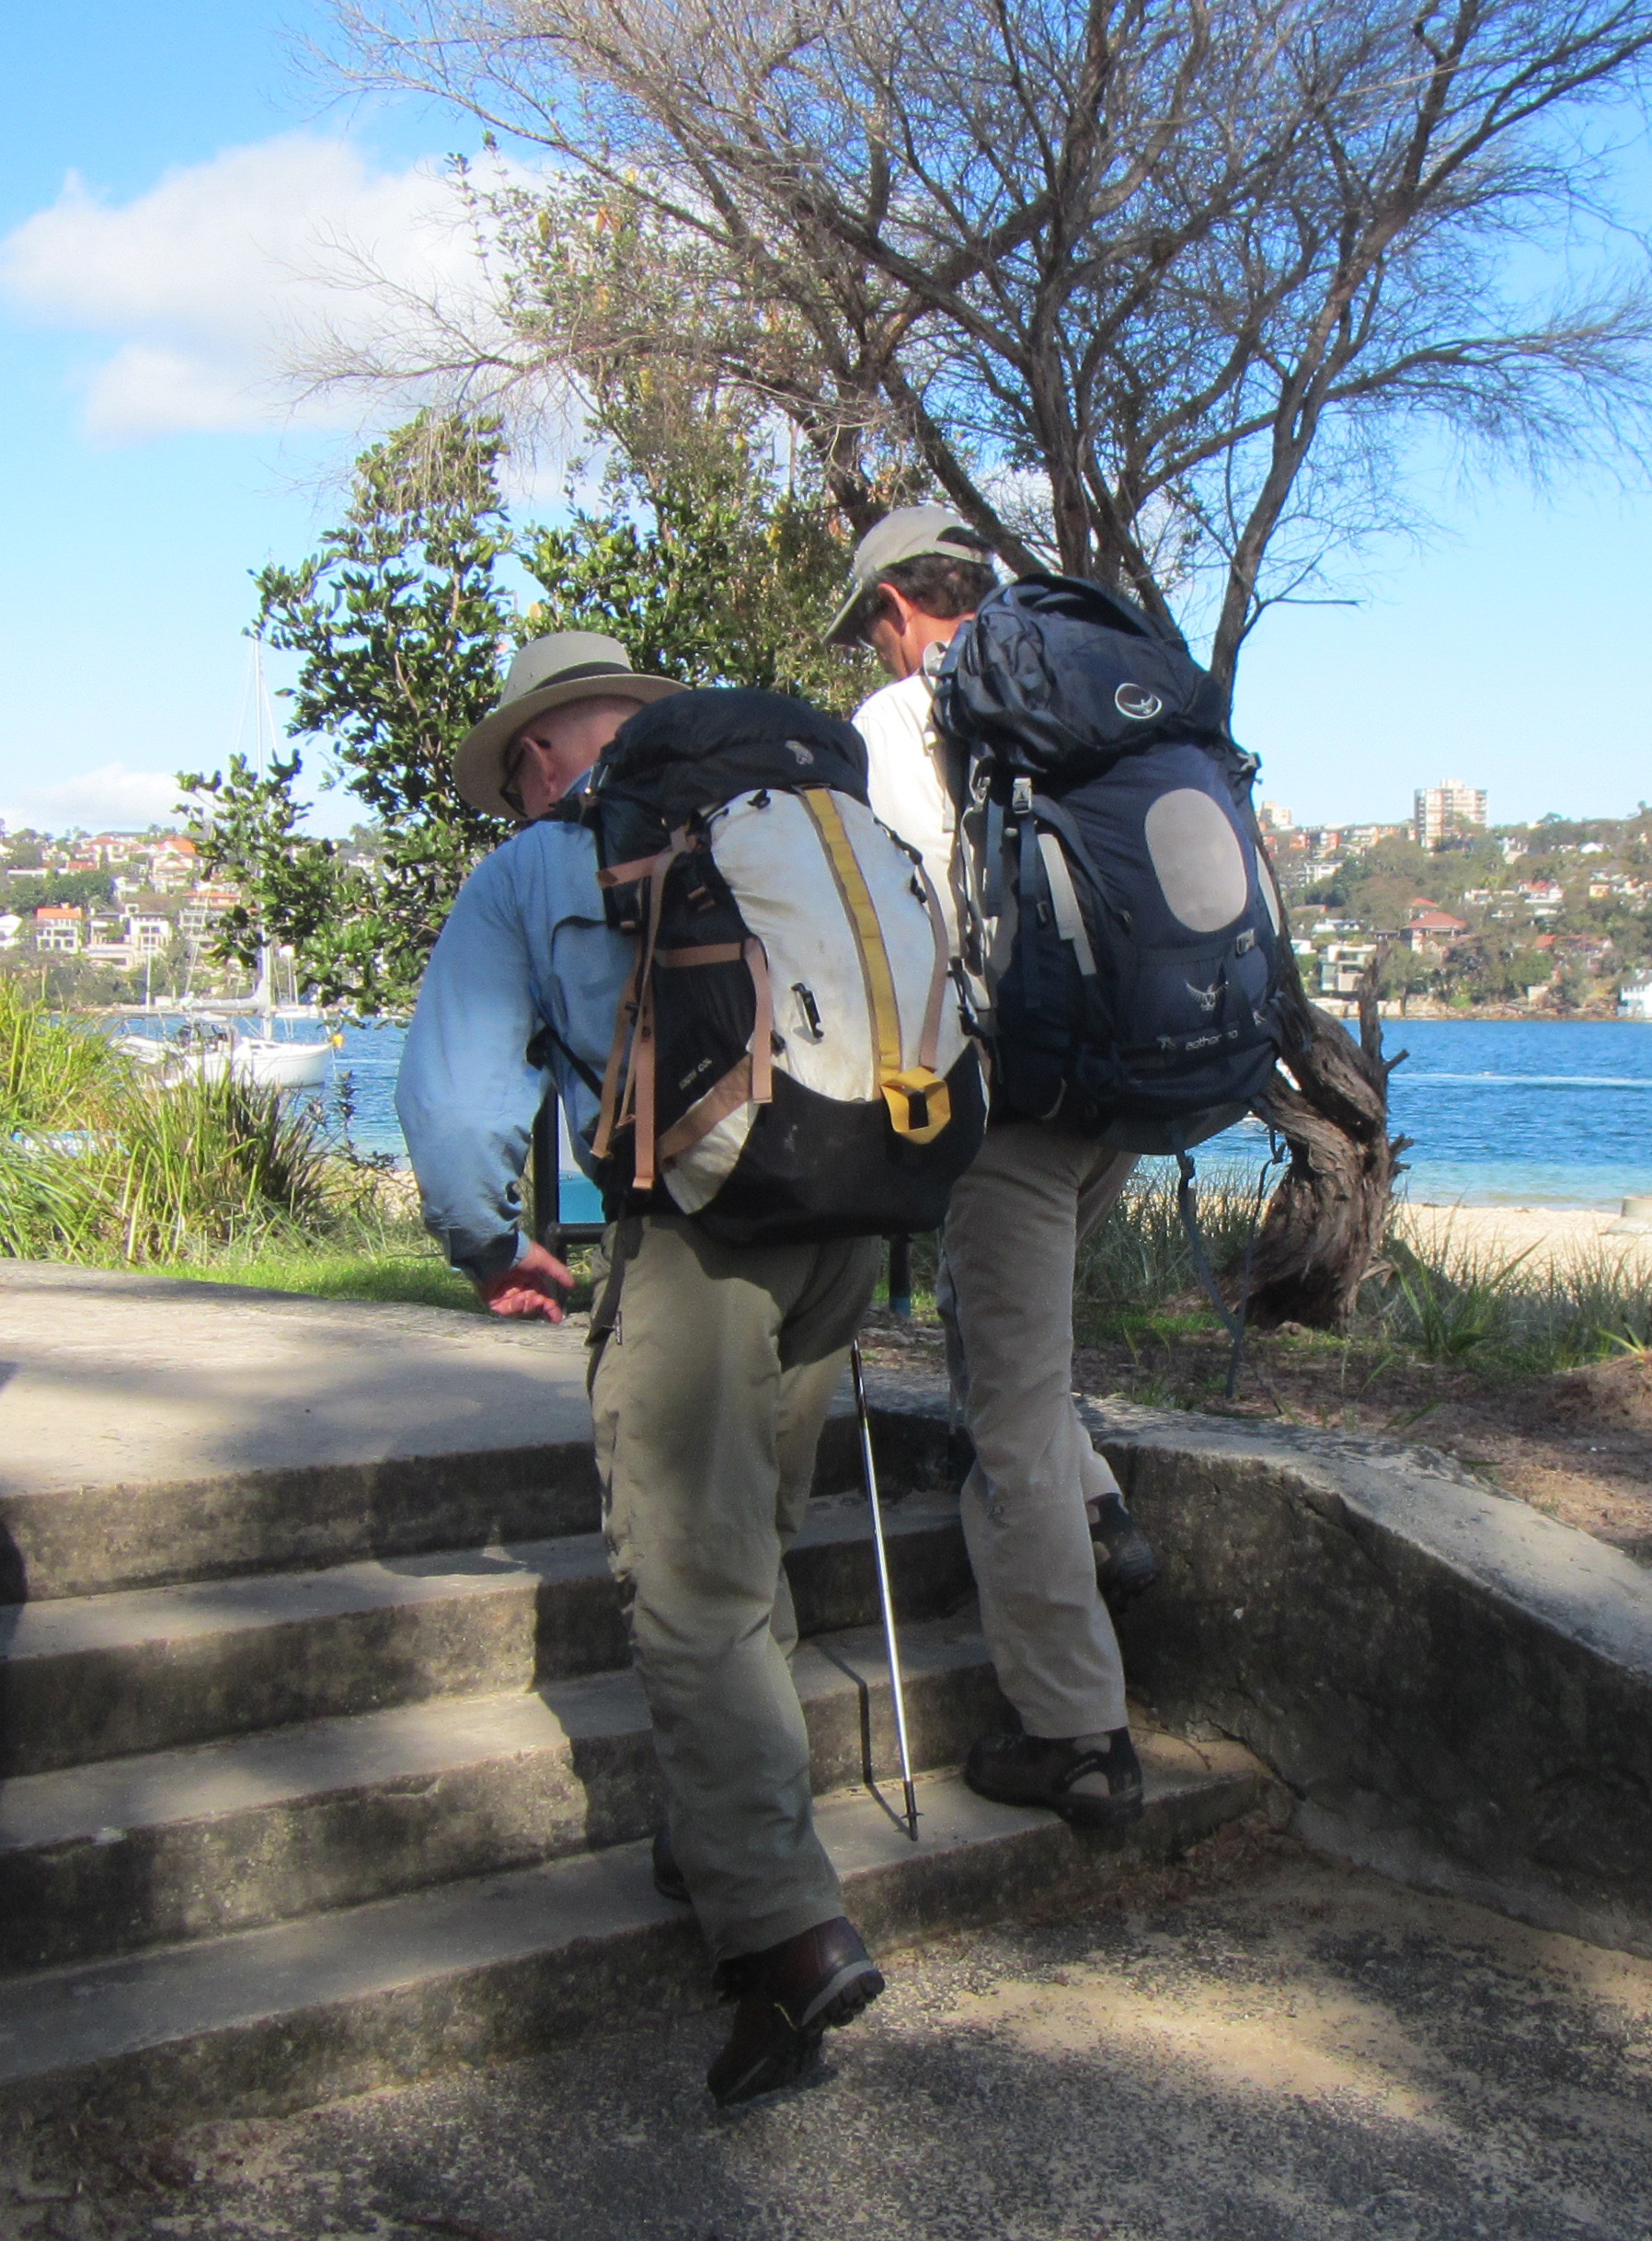 Leaving Clontarf on the way to Manly. Stepping up with my broken right leg. This required enormous concentration but was excellent exercise therapy. Barry is on my right. I am carrying the Mountain Hardware pack I will take to the NT.